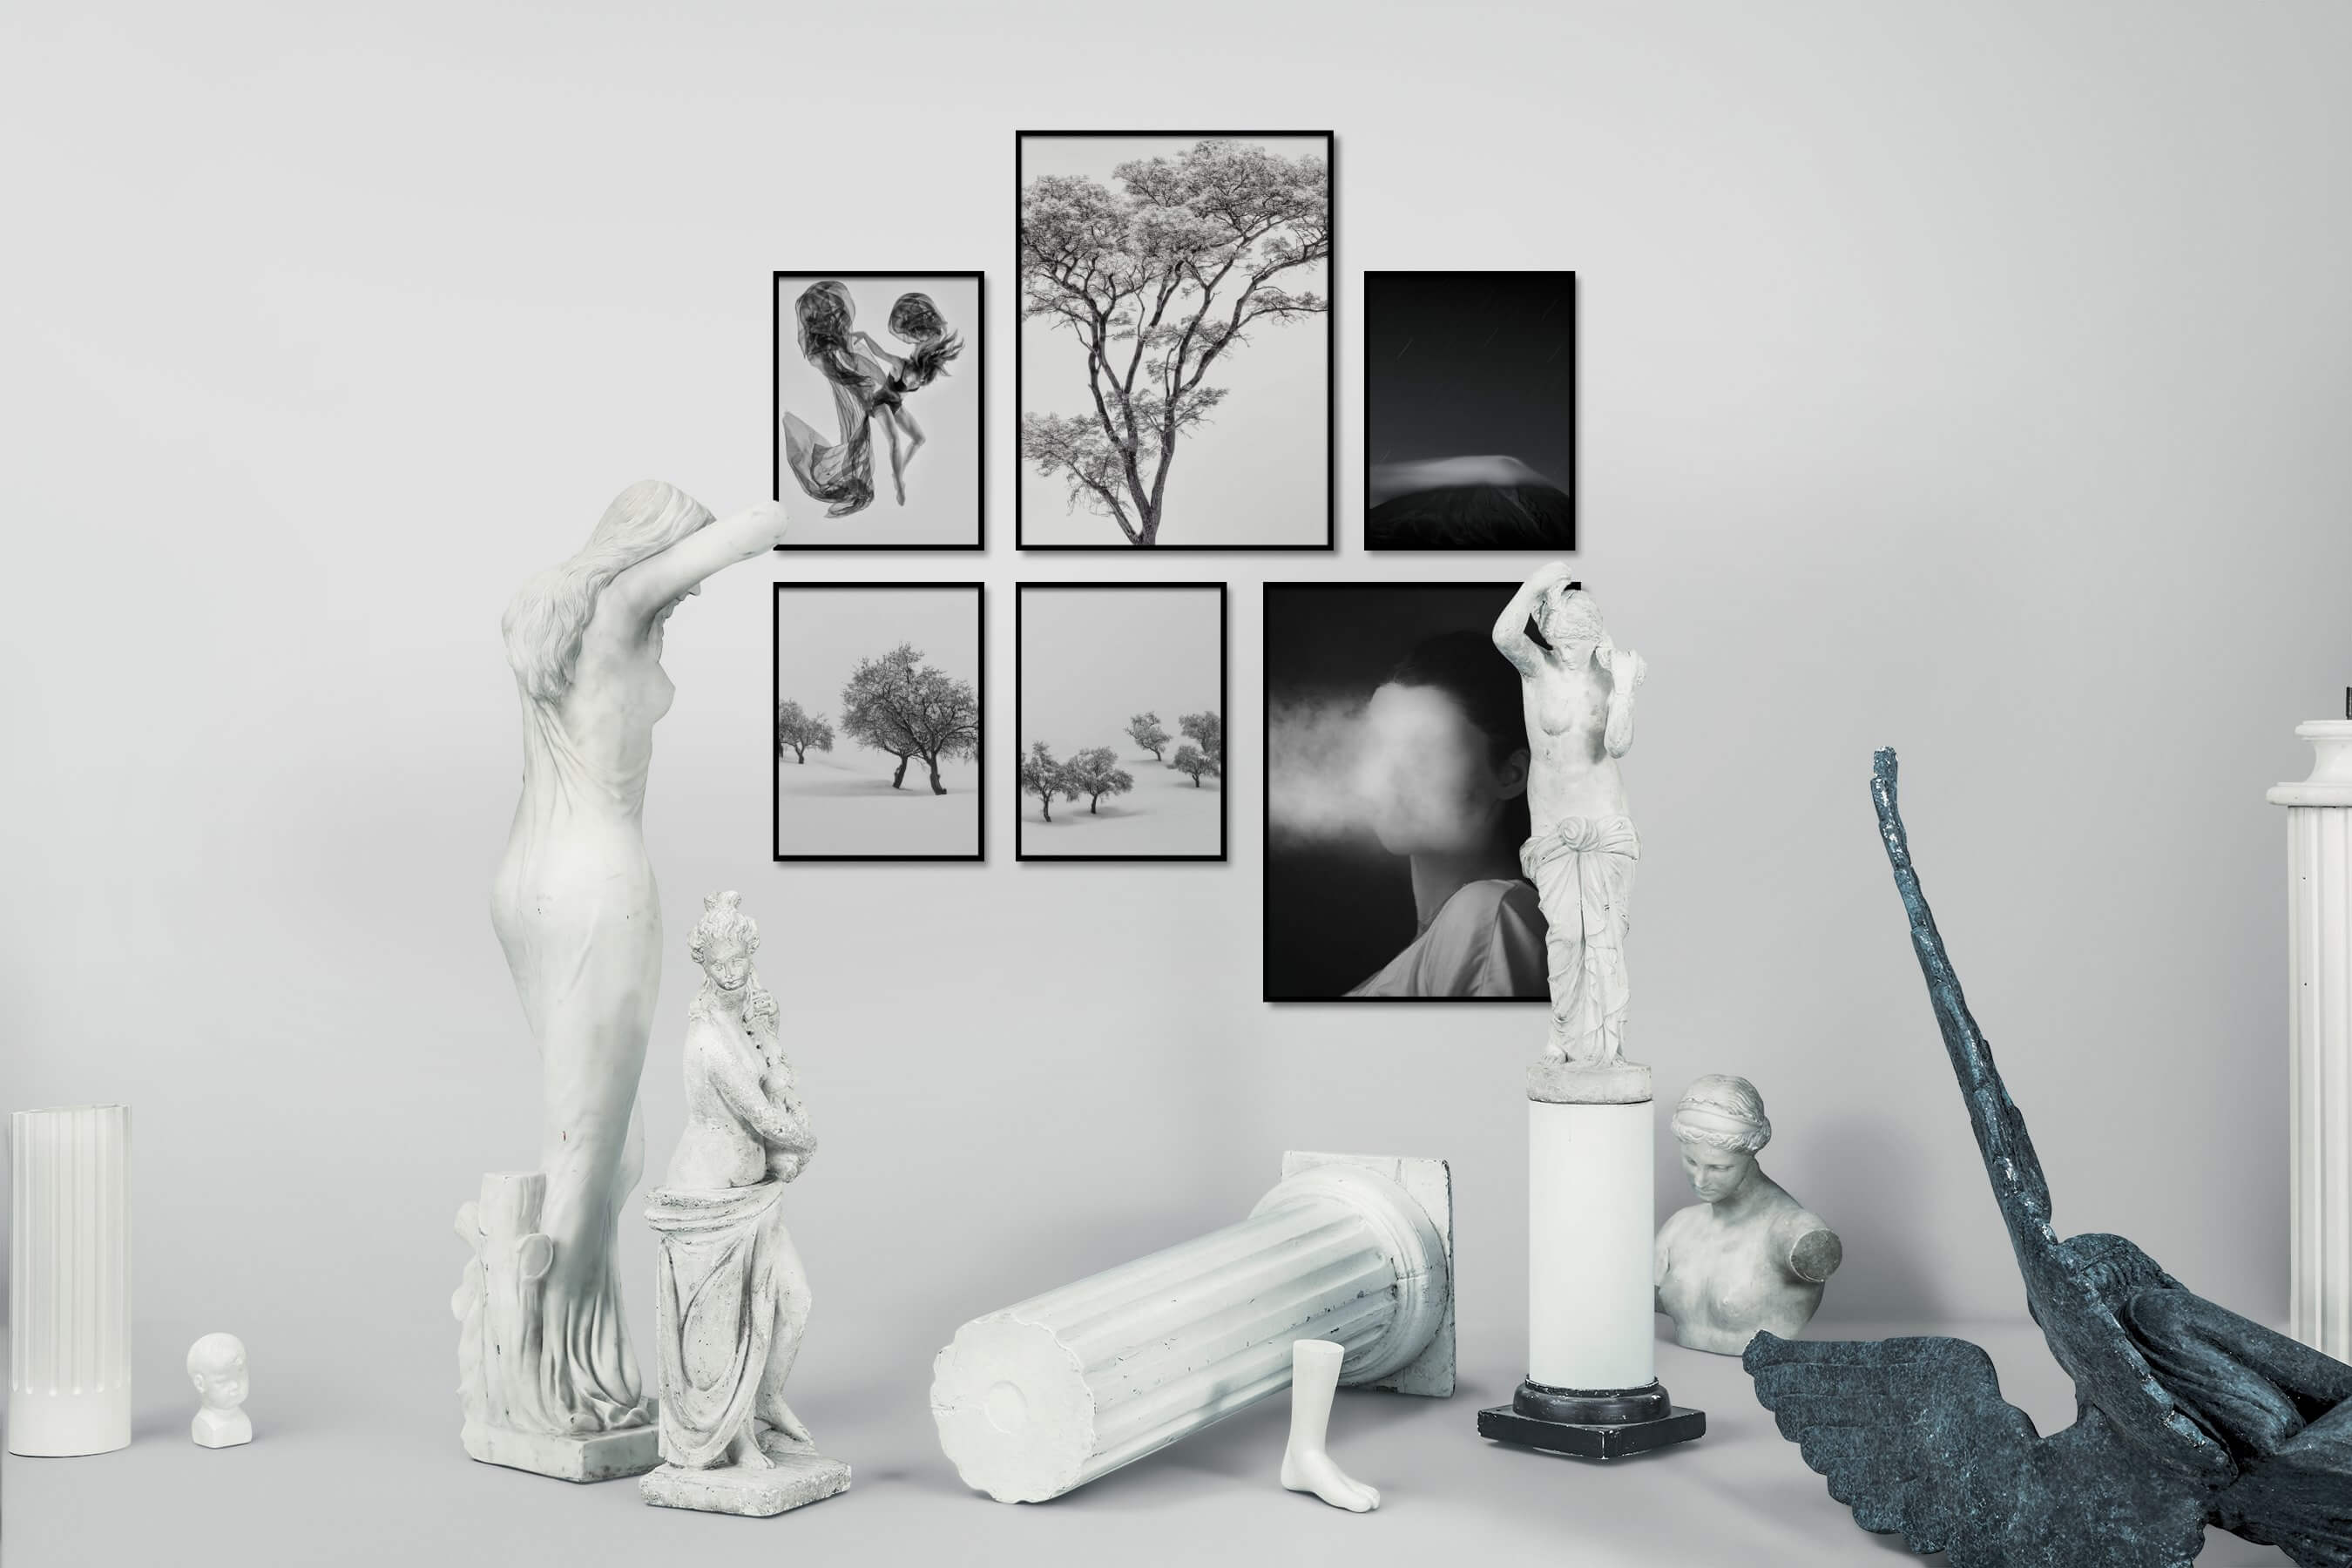 Gallery wall idea with six framed pictures arranged on a wall depicting Fashion & Beauty, Black & White, For the Moderate, Nature, For the Minimalist, Country Life, Artsy, Dark Tones, and Mindfulness